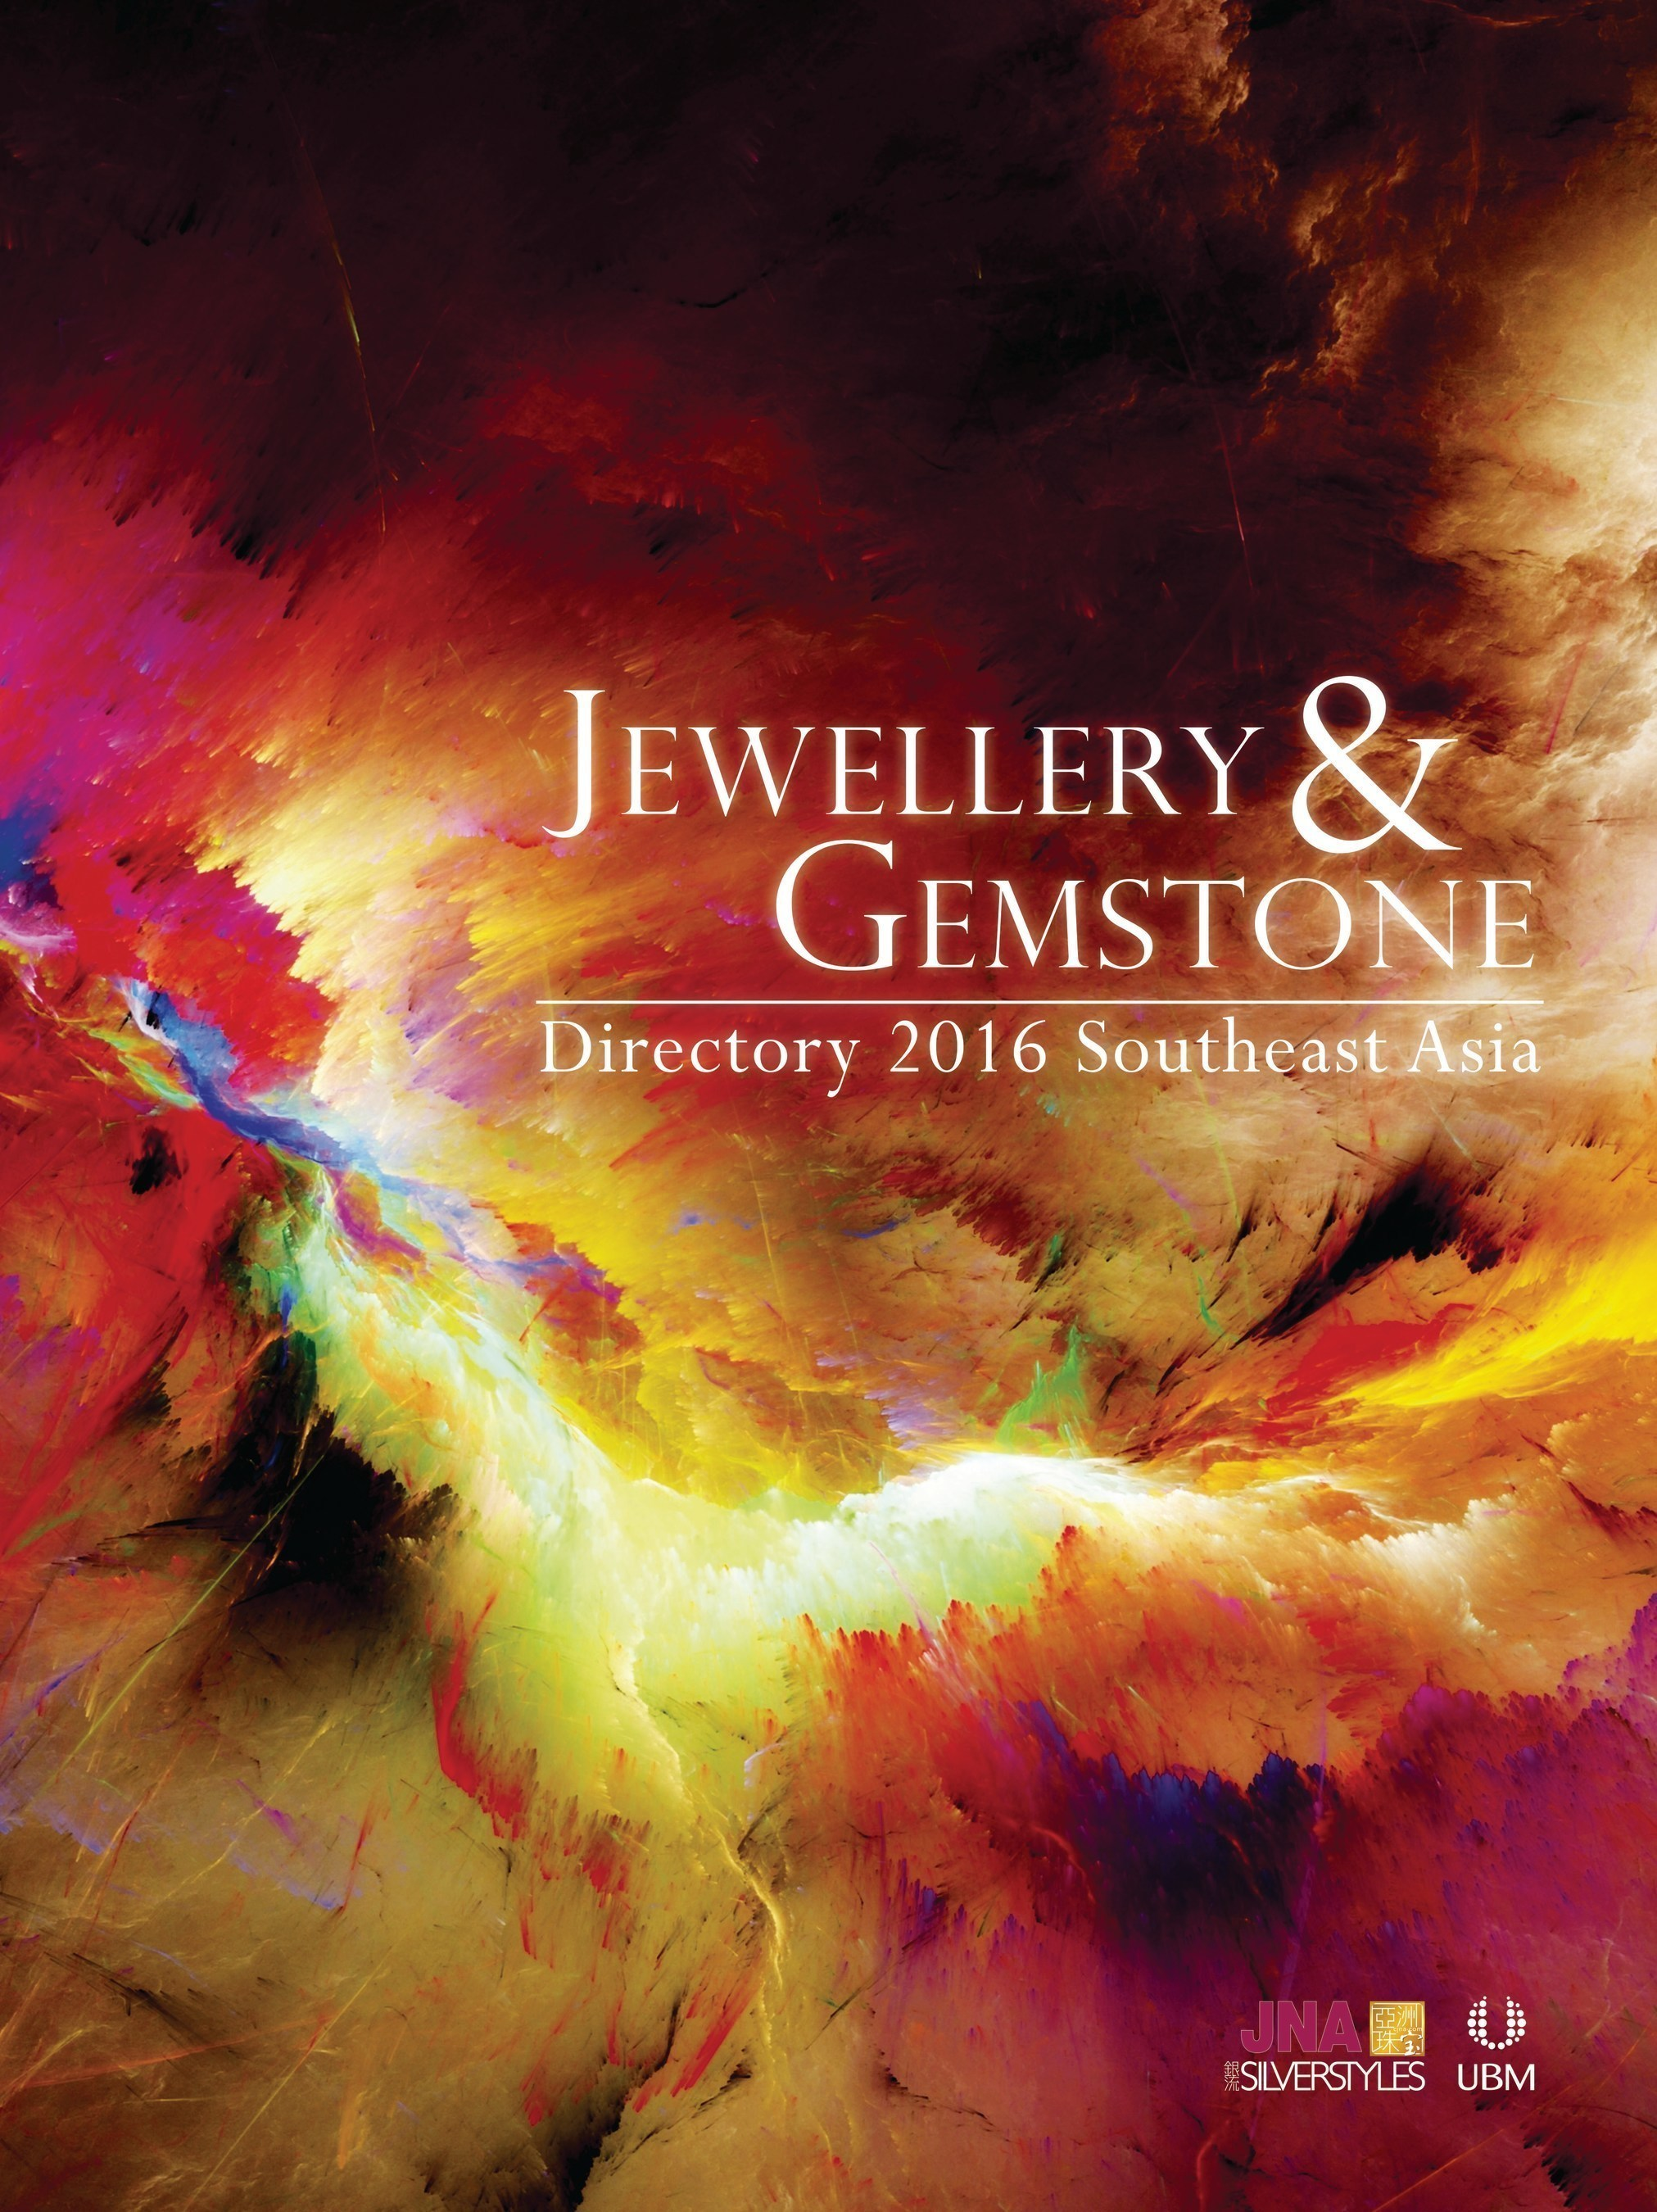 Cover image of the Jewellery & Gemstone Directory 2016 - Southeast Asia edition